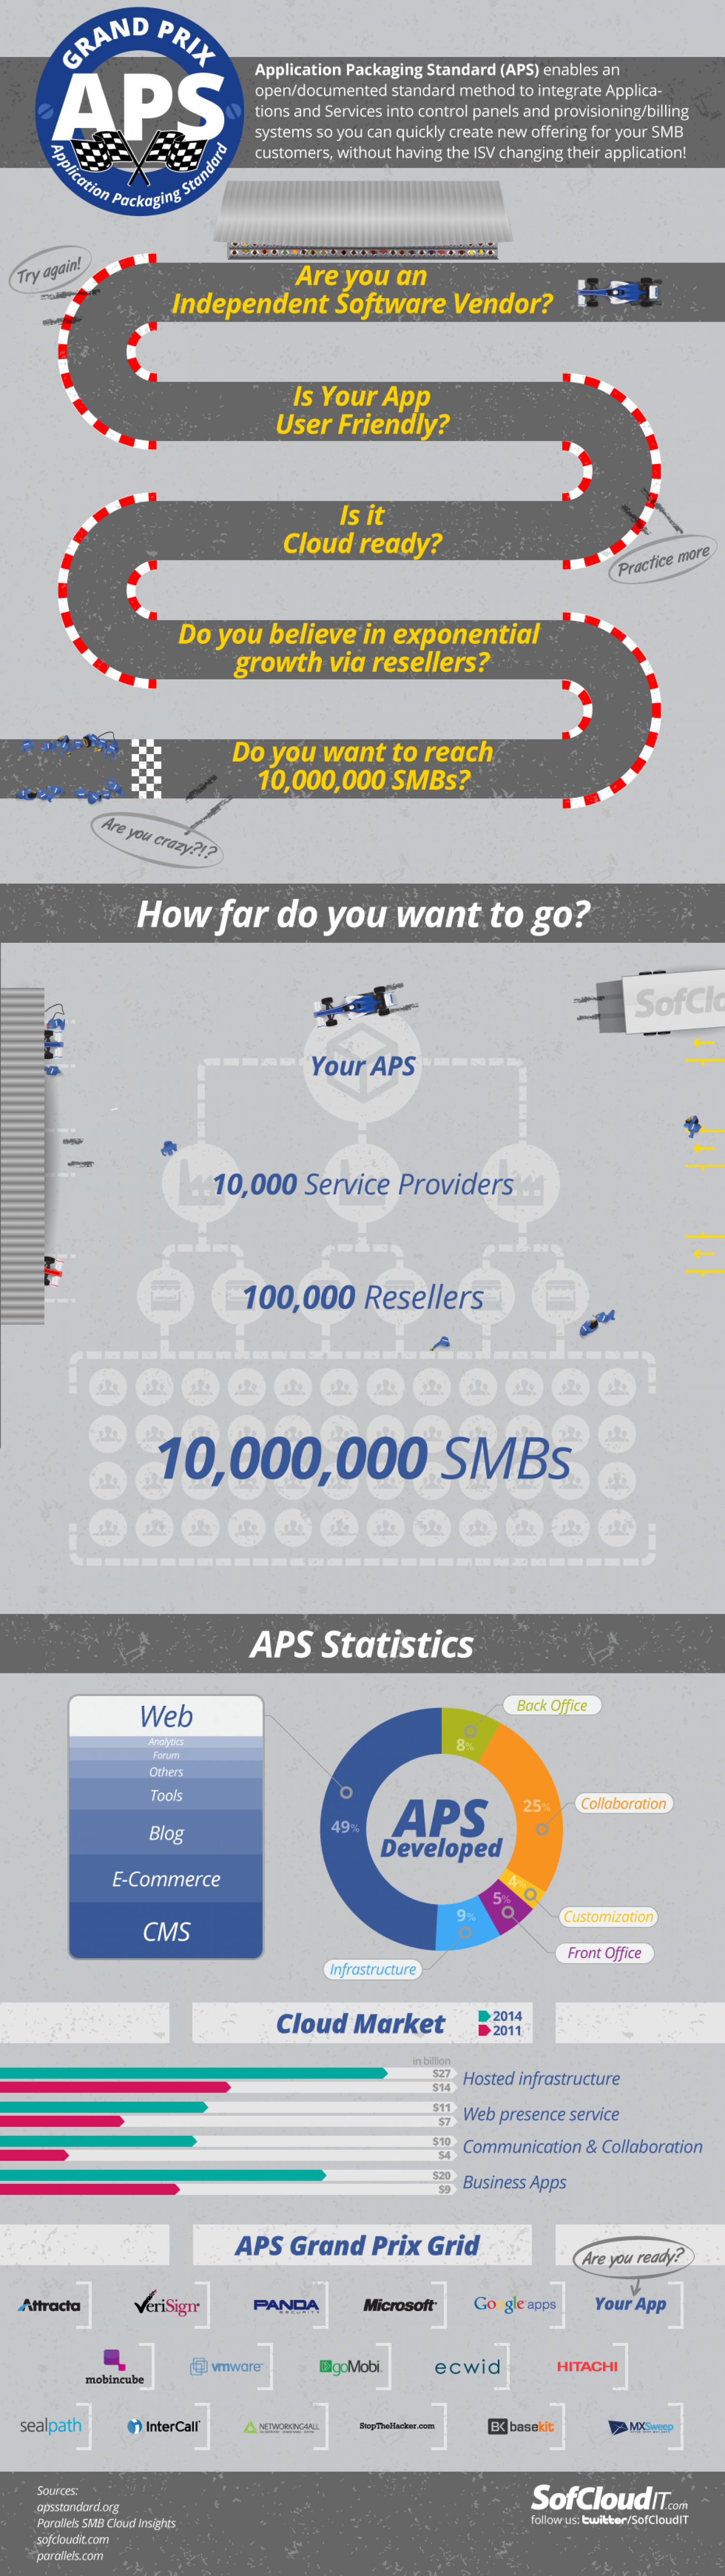 Application Packaging Standard Grand Prix Infographic